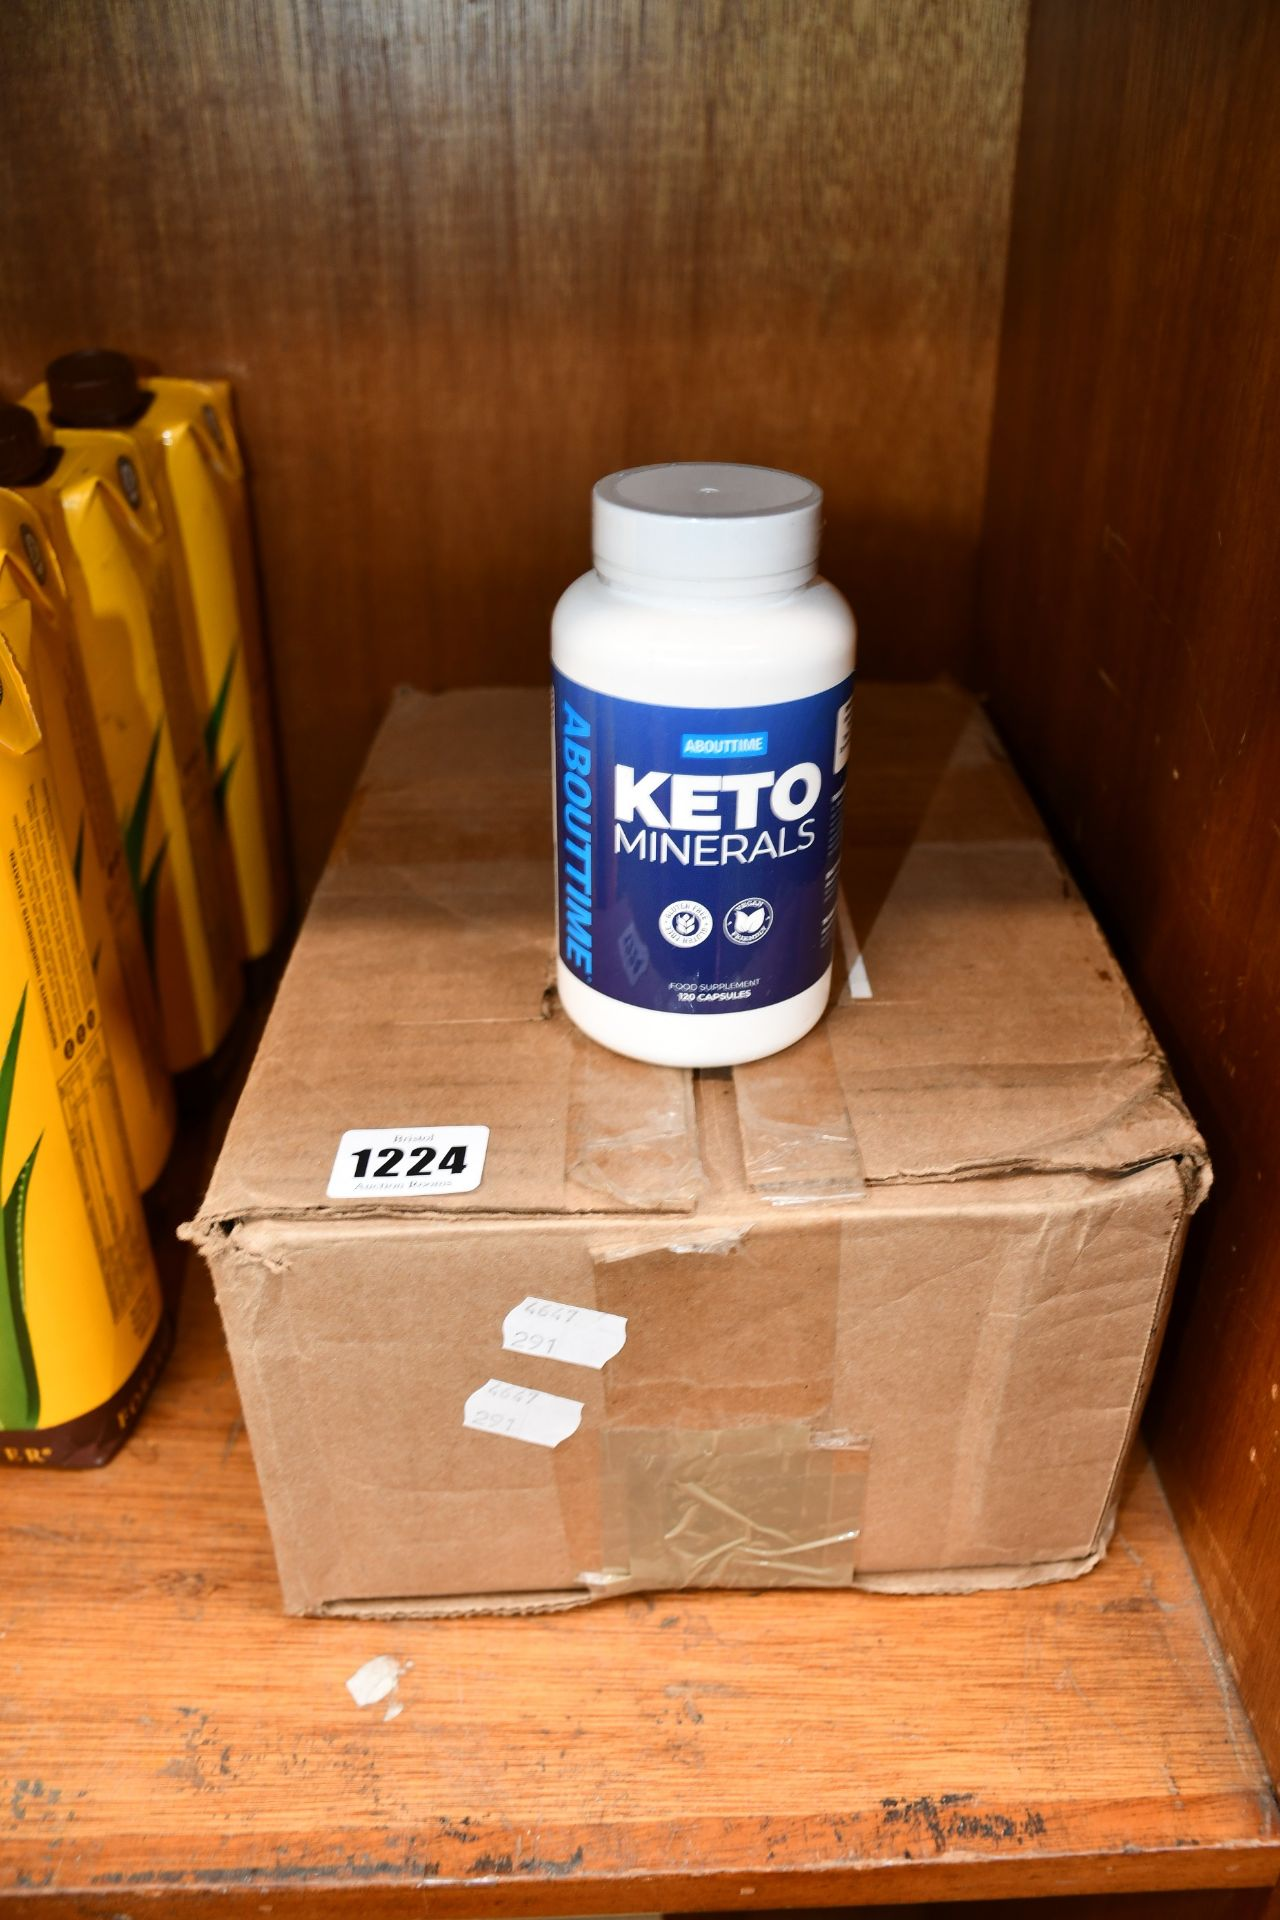 Lot 1224 - Twelve tubs of Abouttime Keto Minerals (120 capsules each, expires: 03/22).